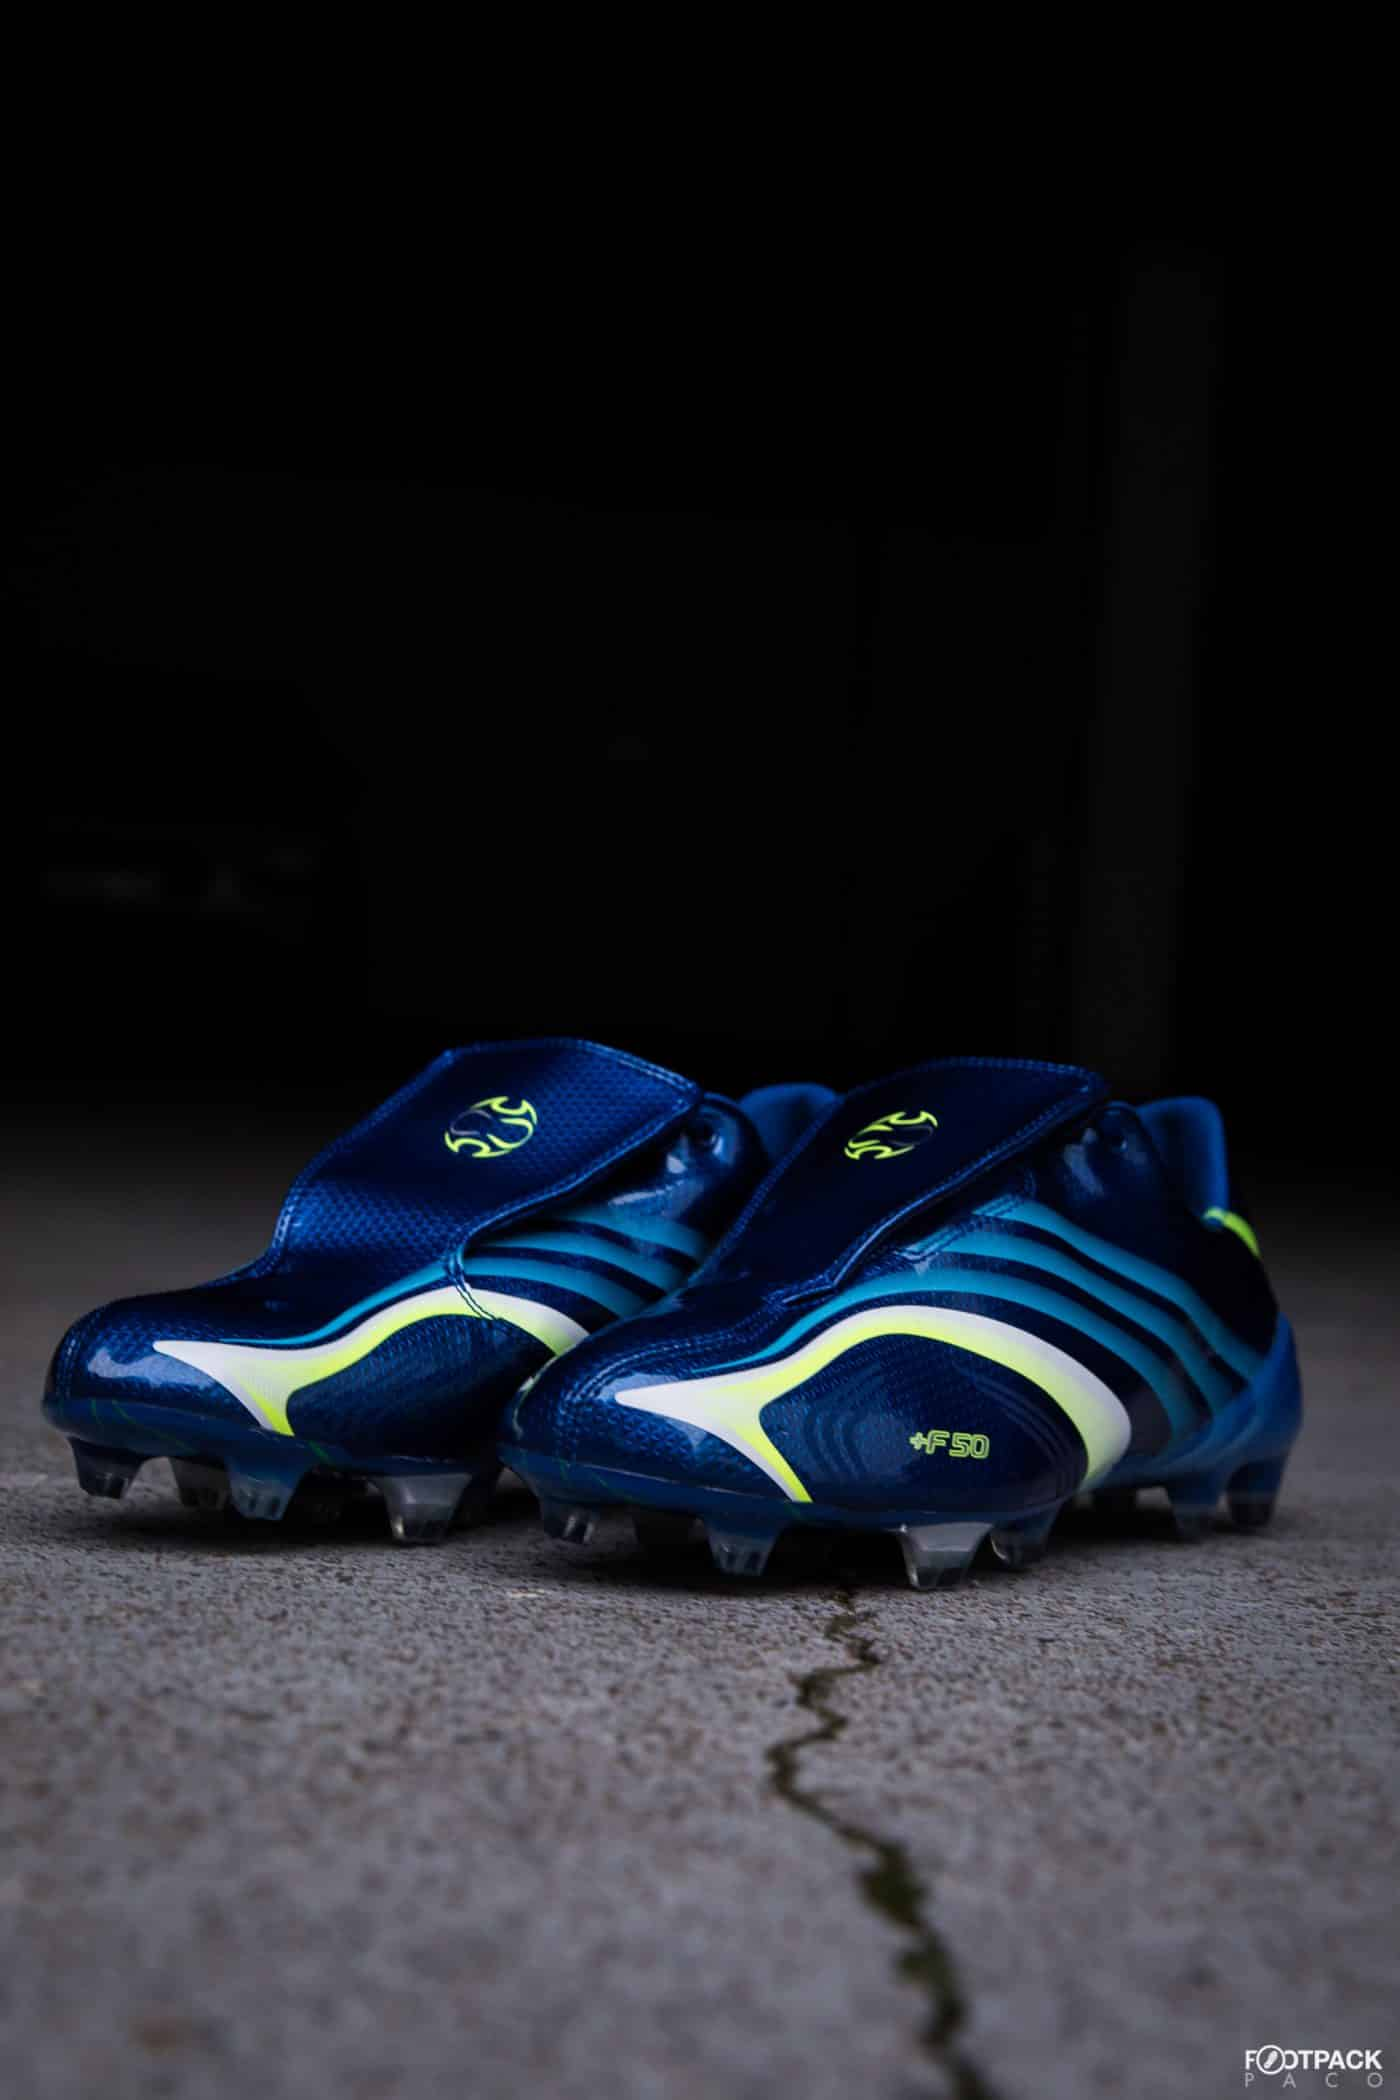 adidas-X50.6-reedition-2019-adidas-F50.6-tunit-2006-footpack-19